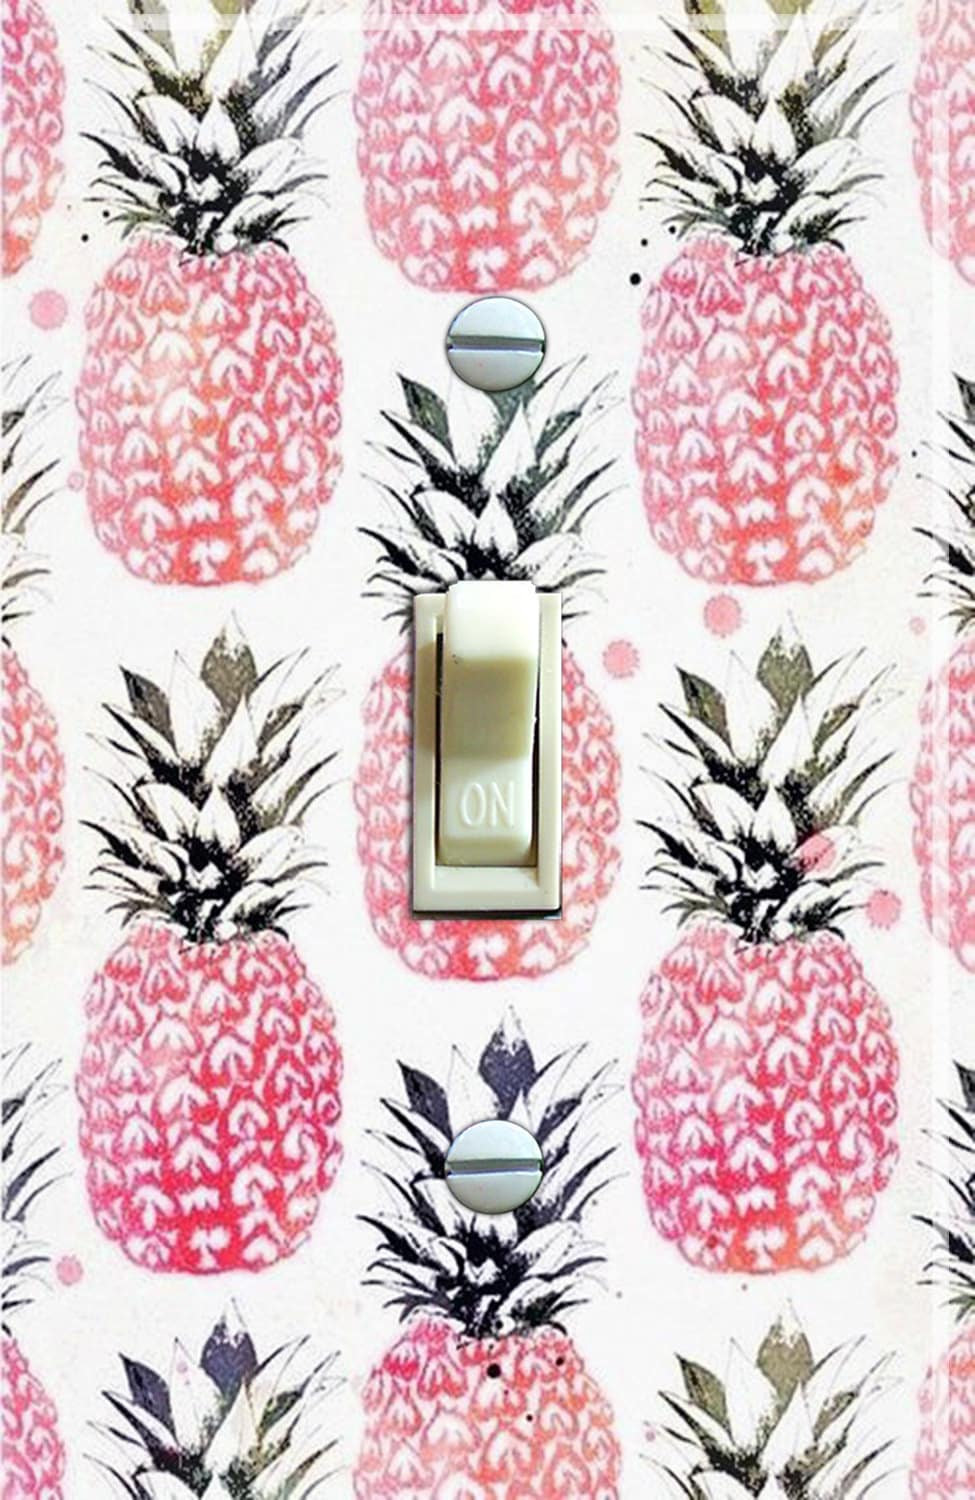 Vintage Pink Pineapple Wallpaper Switch Plate